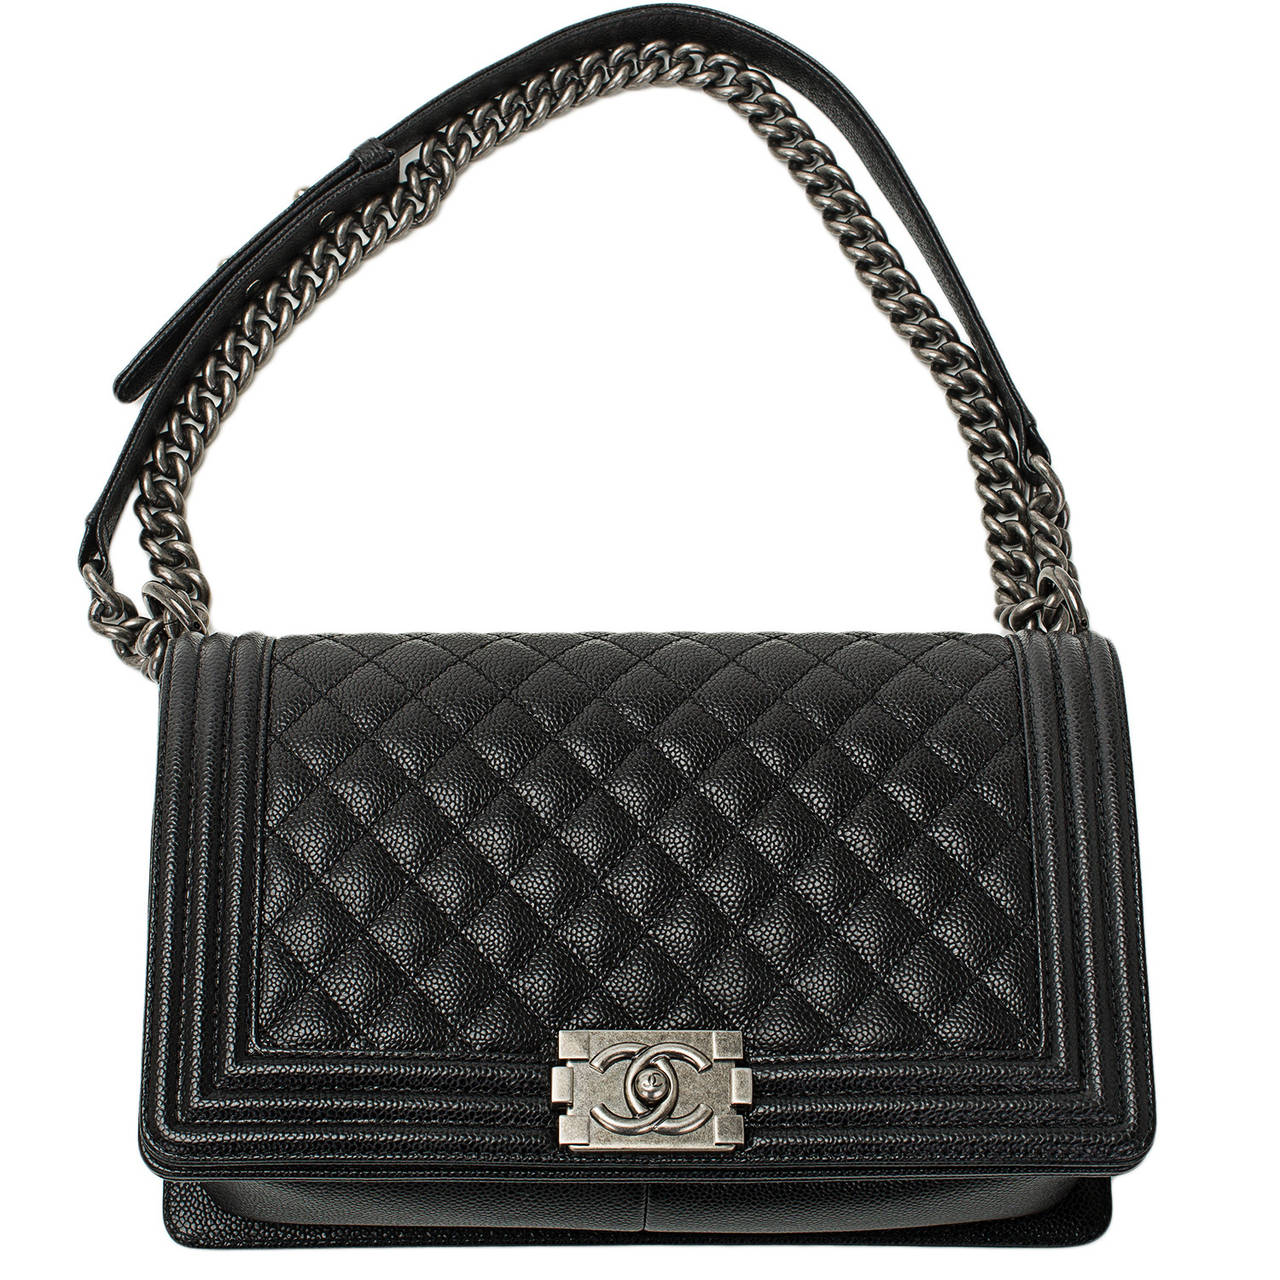 Super Black Caviar New Medium Boy Bag | 1stdibs.com AM26